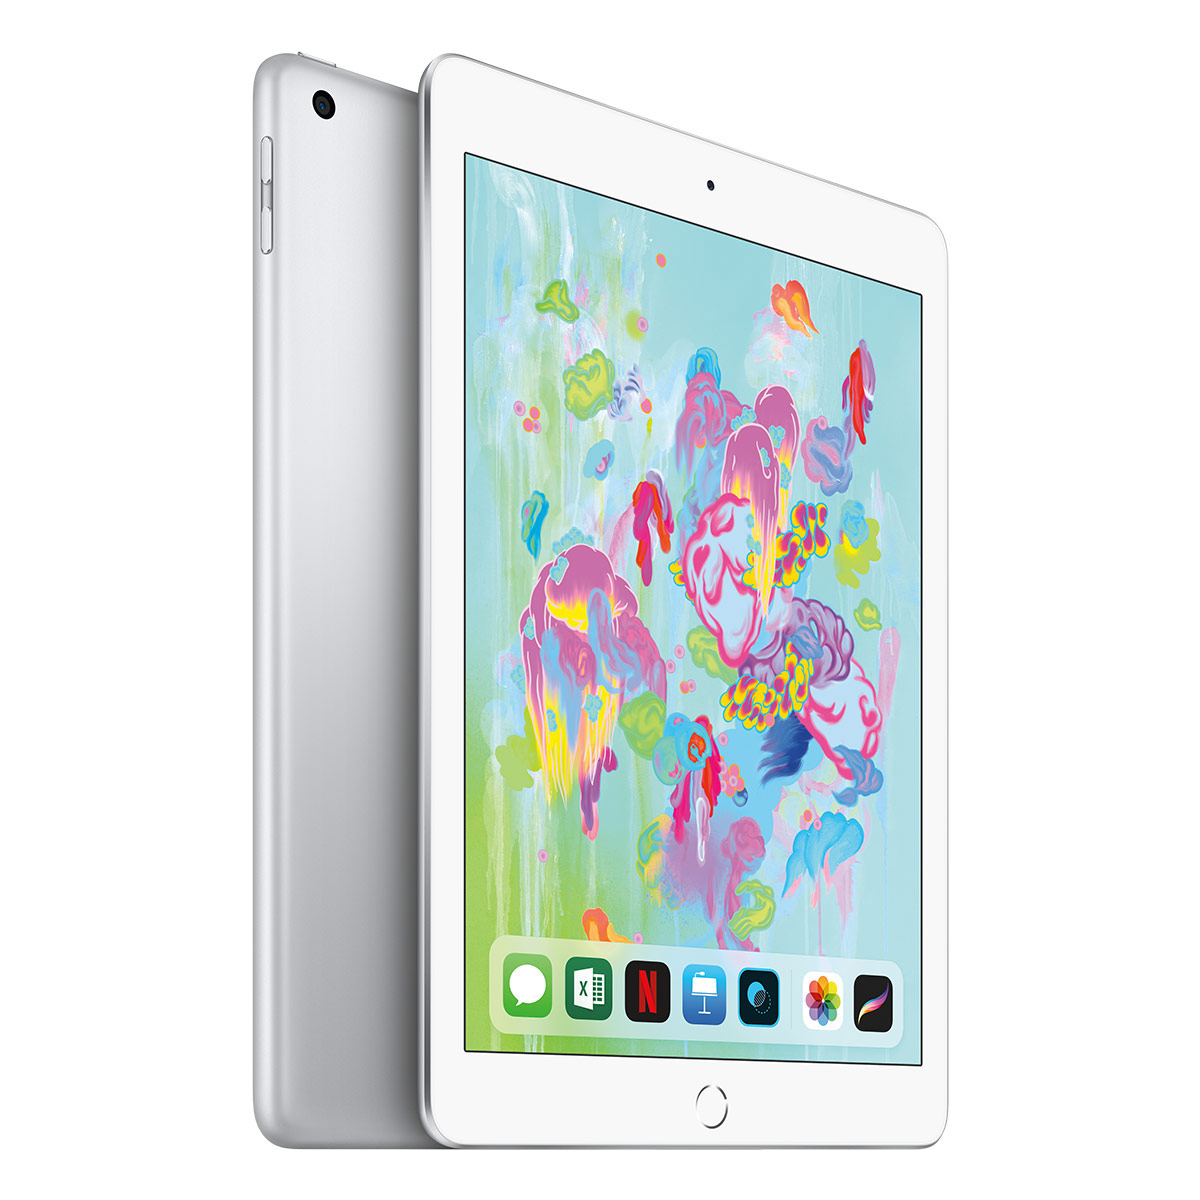 Education Apple iPad 128GB WiFi - Silver